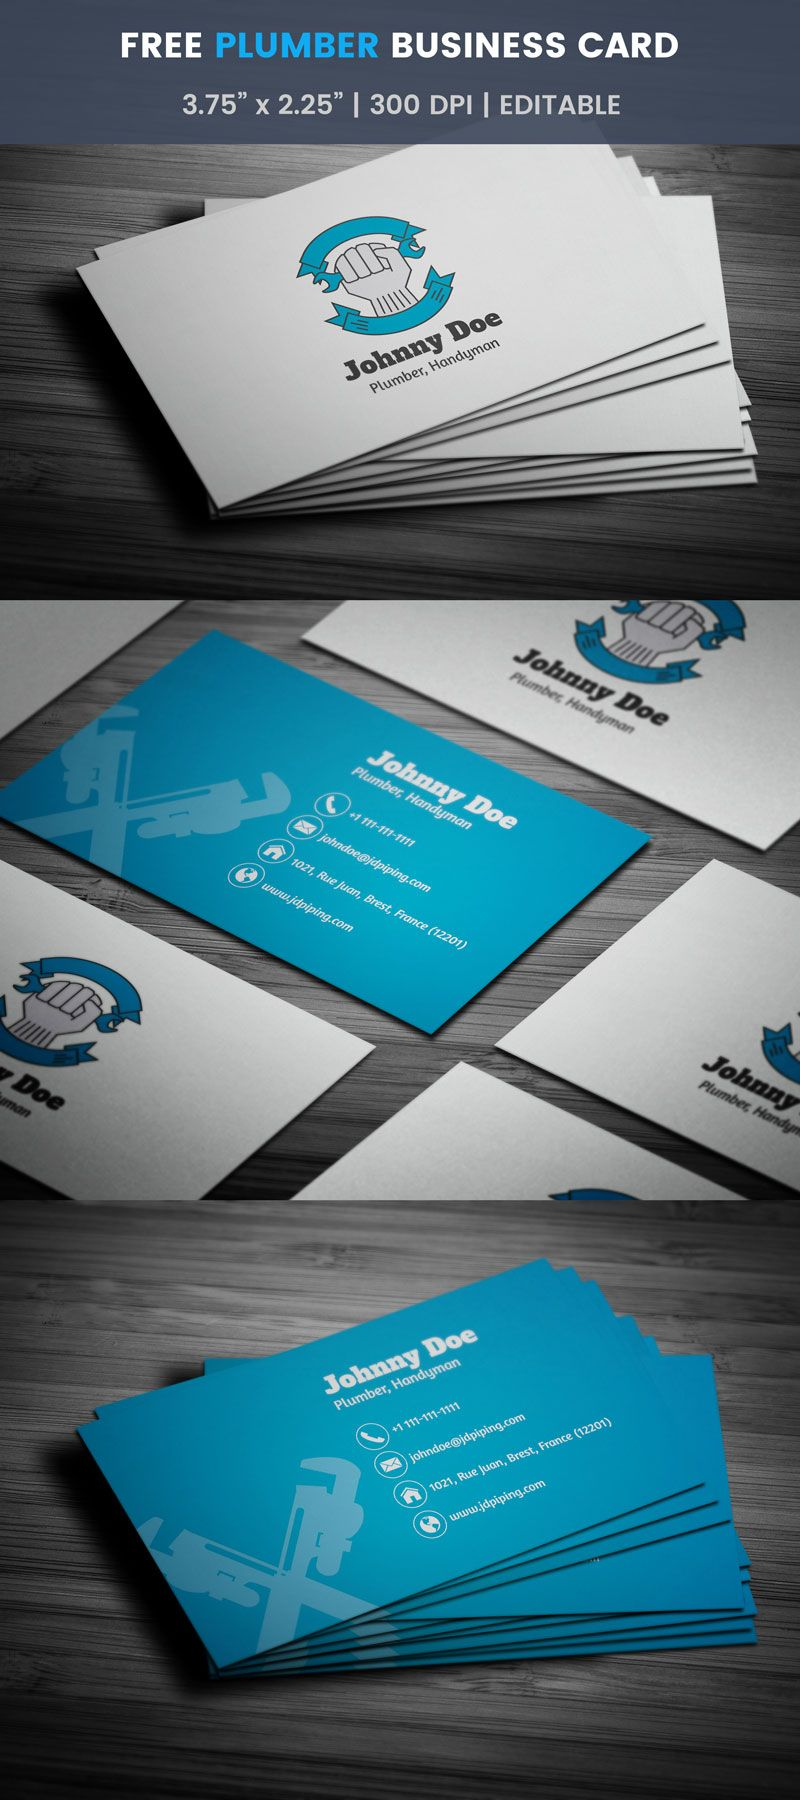 Plumber Business Card Full Preview